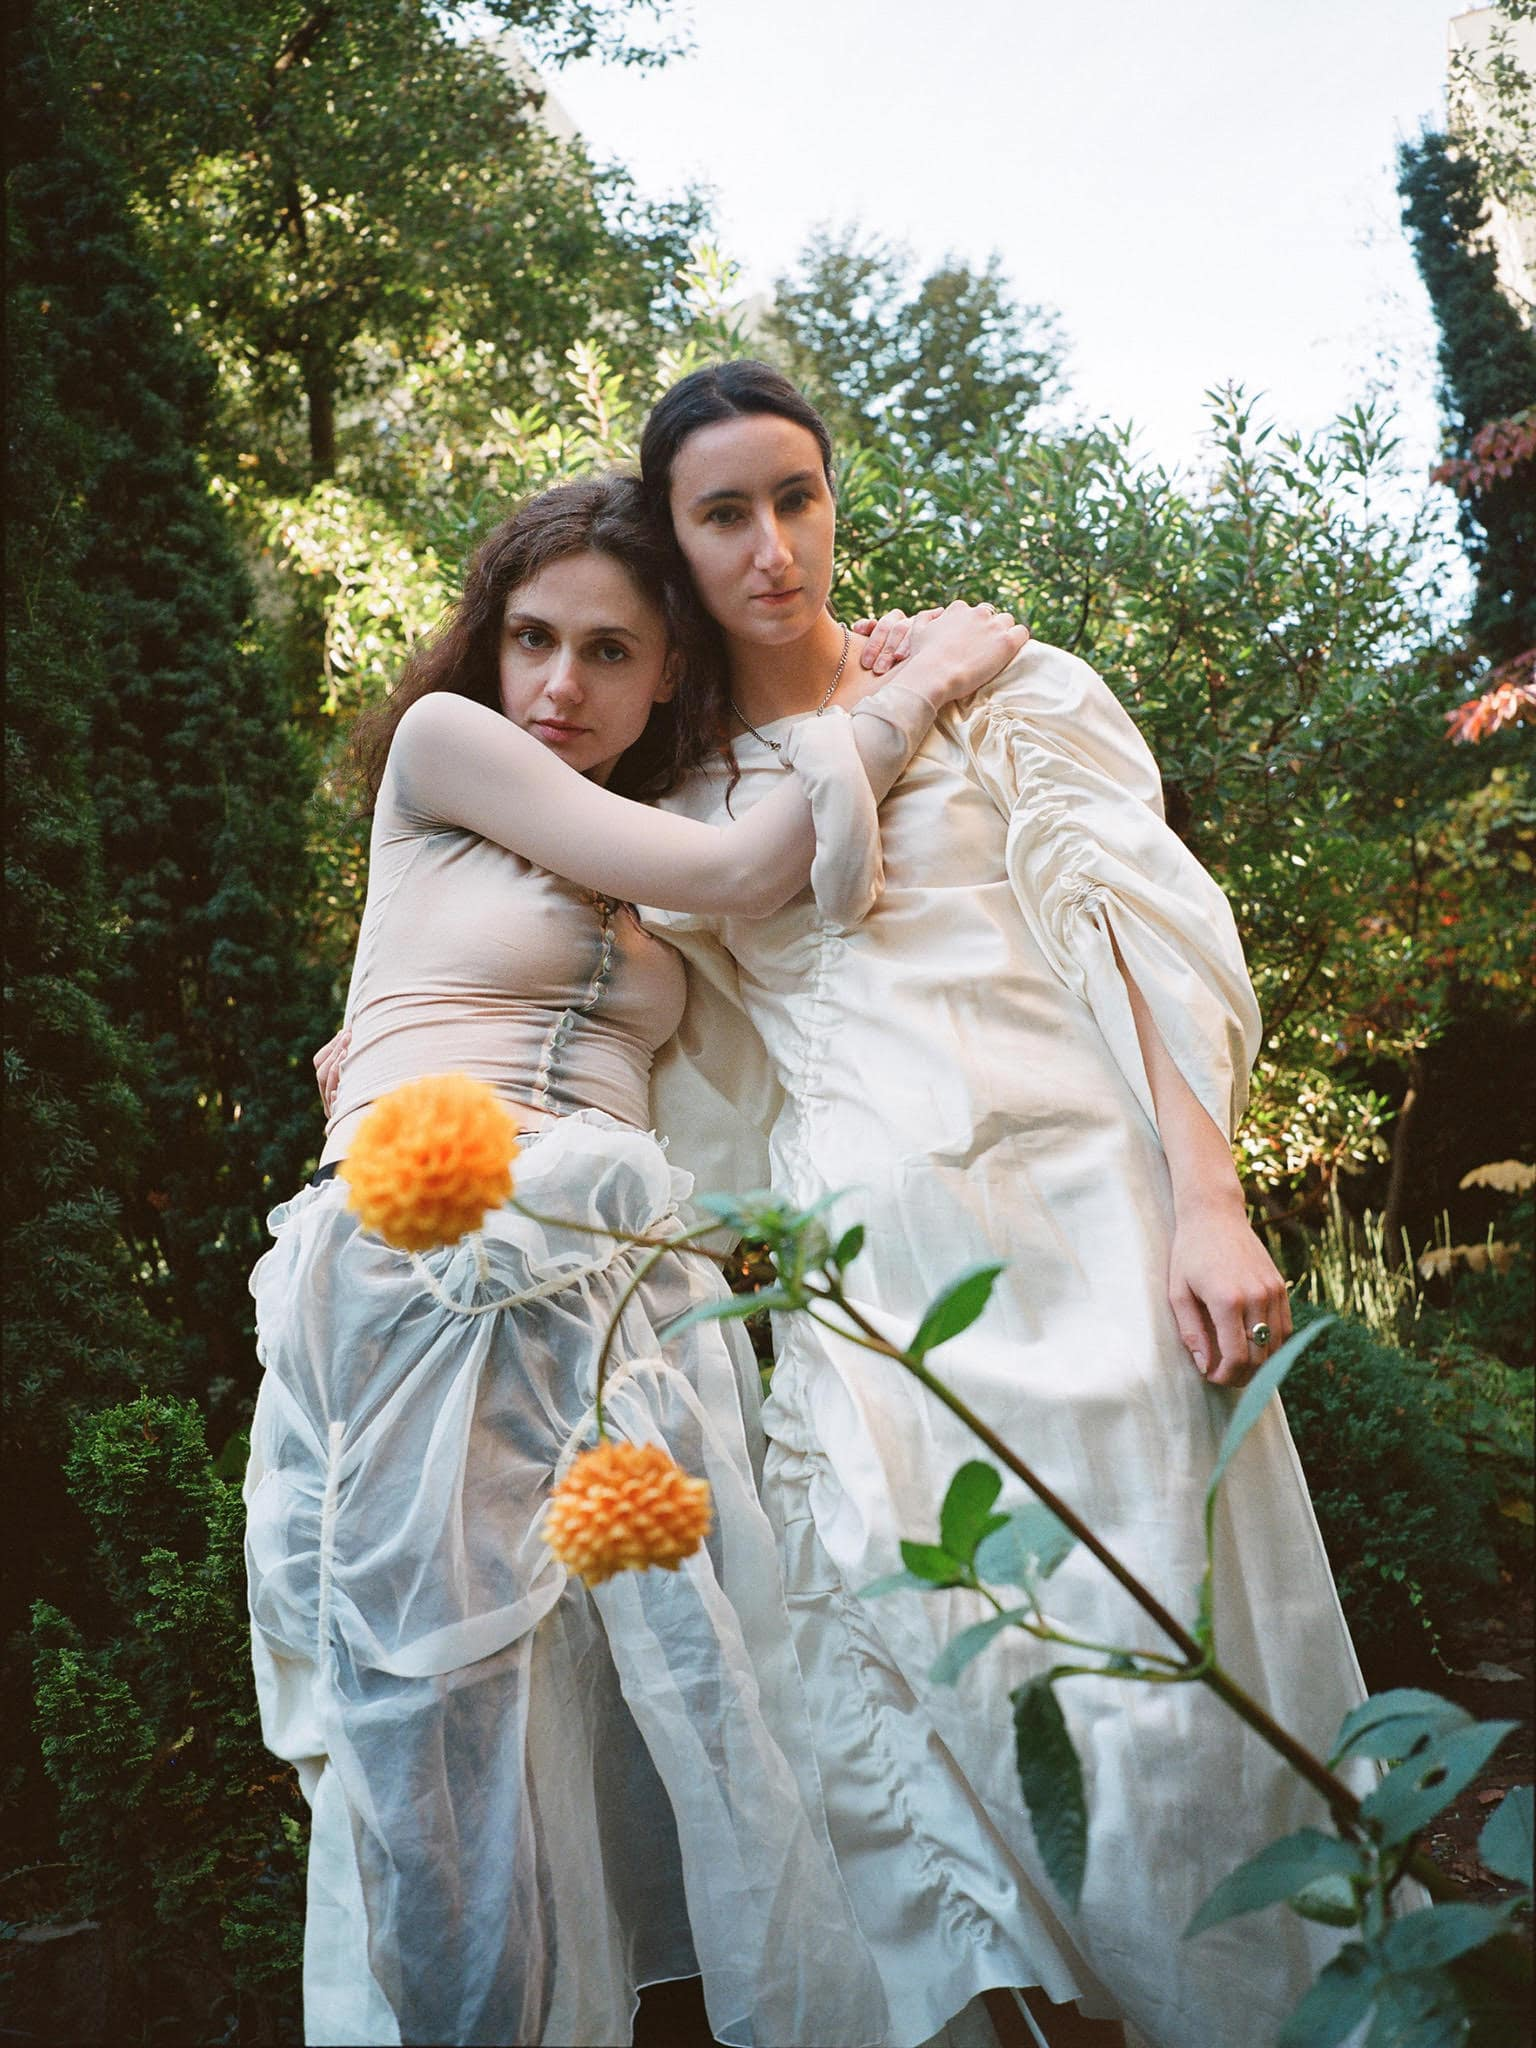 Vita Haas and Lucy Weisner from Cafe Forgot